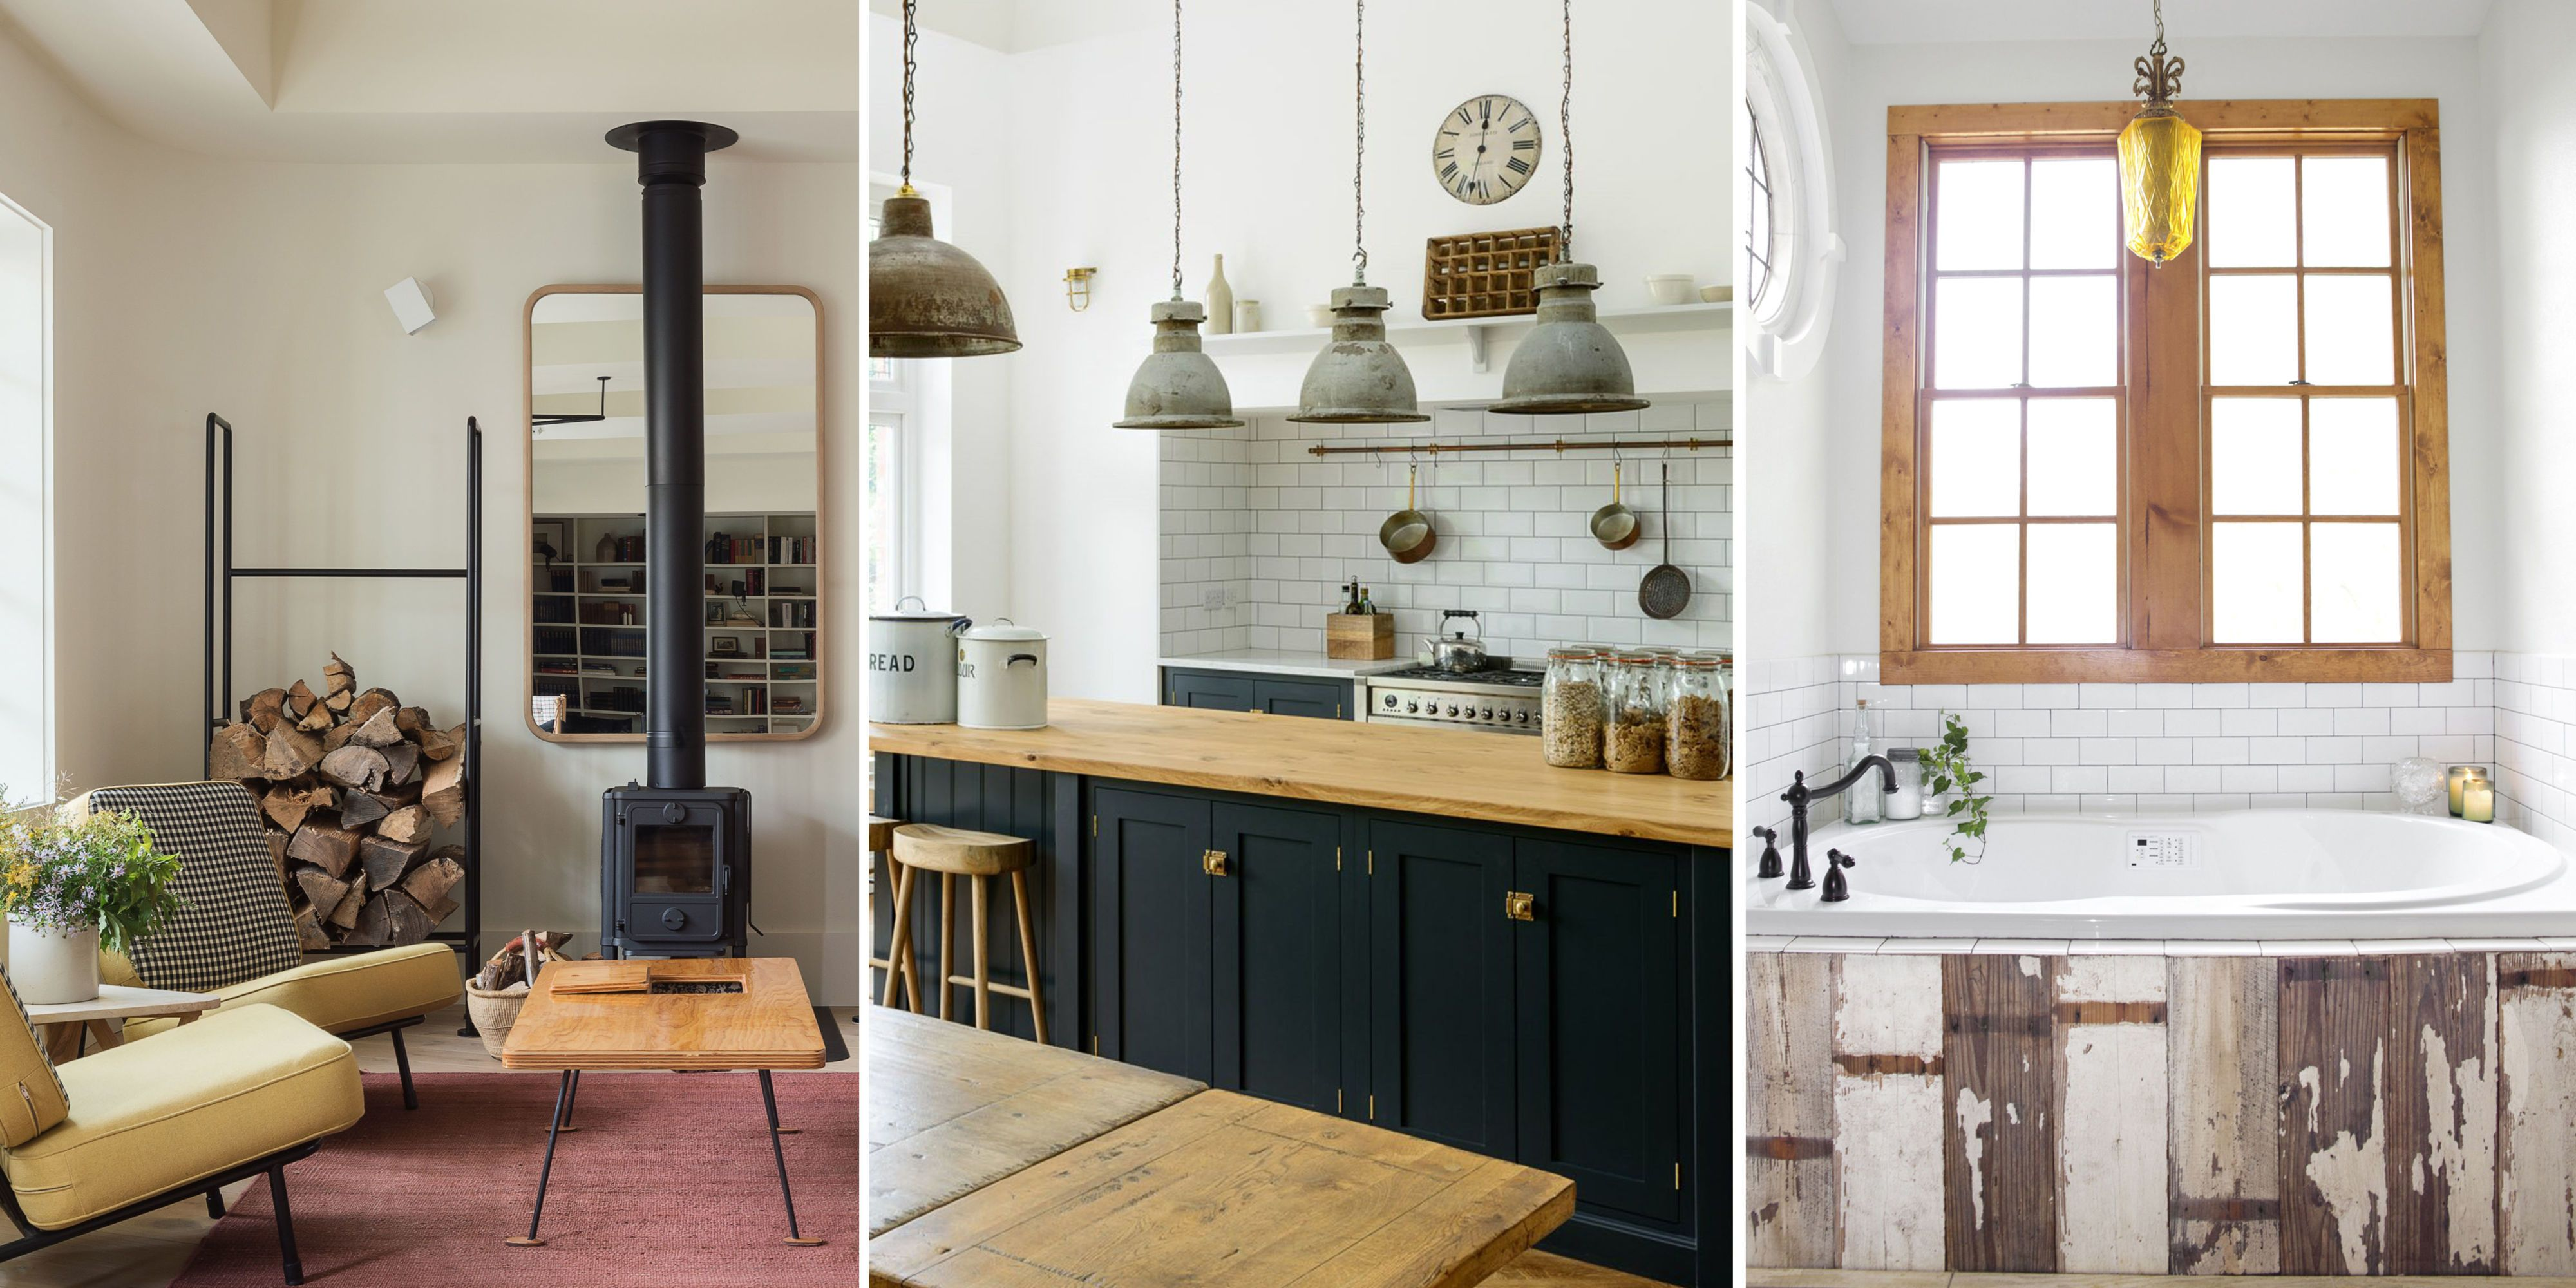 Matthew Williams/deVOL Kitchens/Touchstone